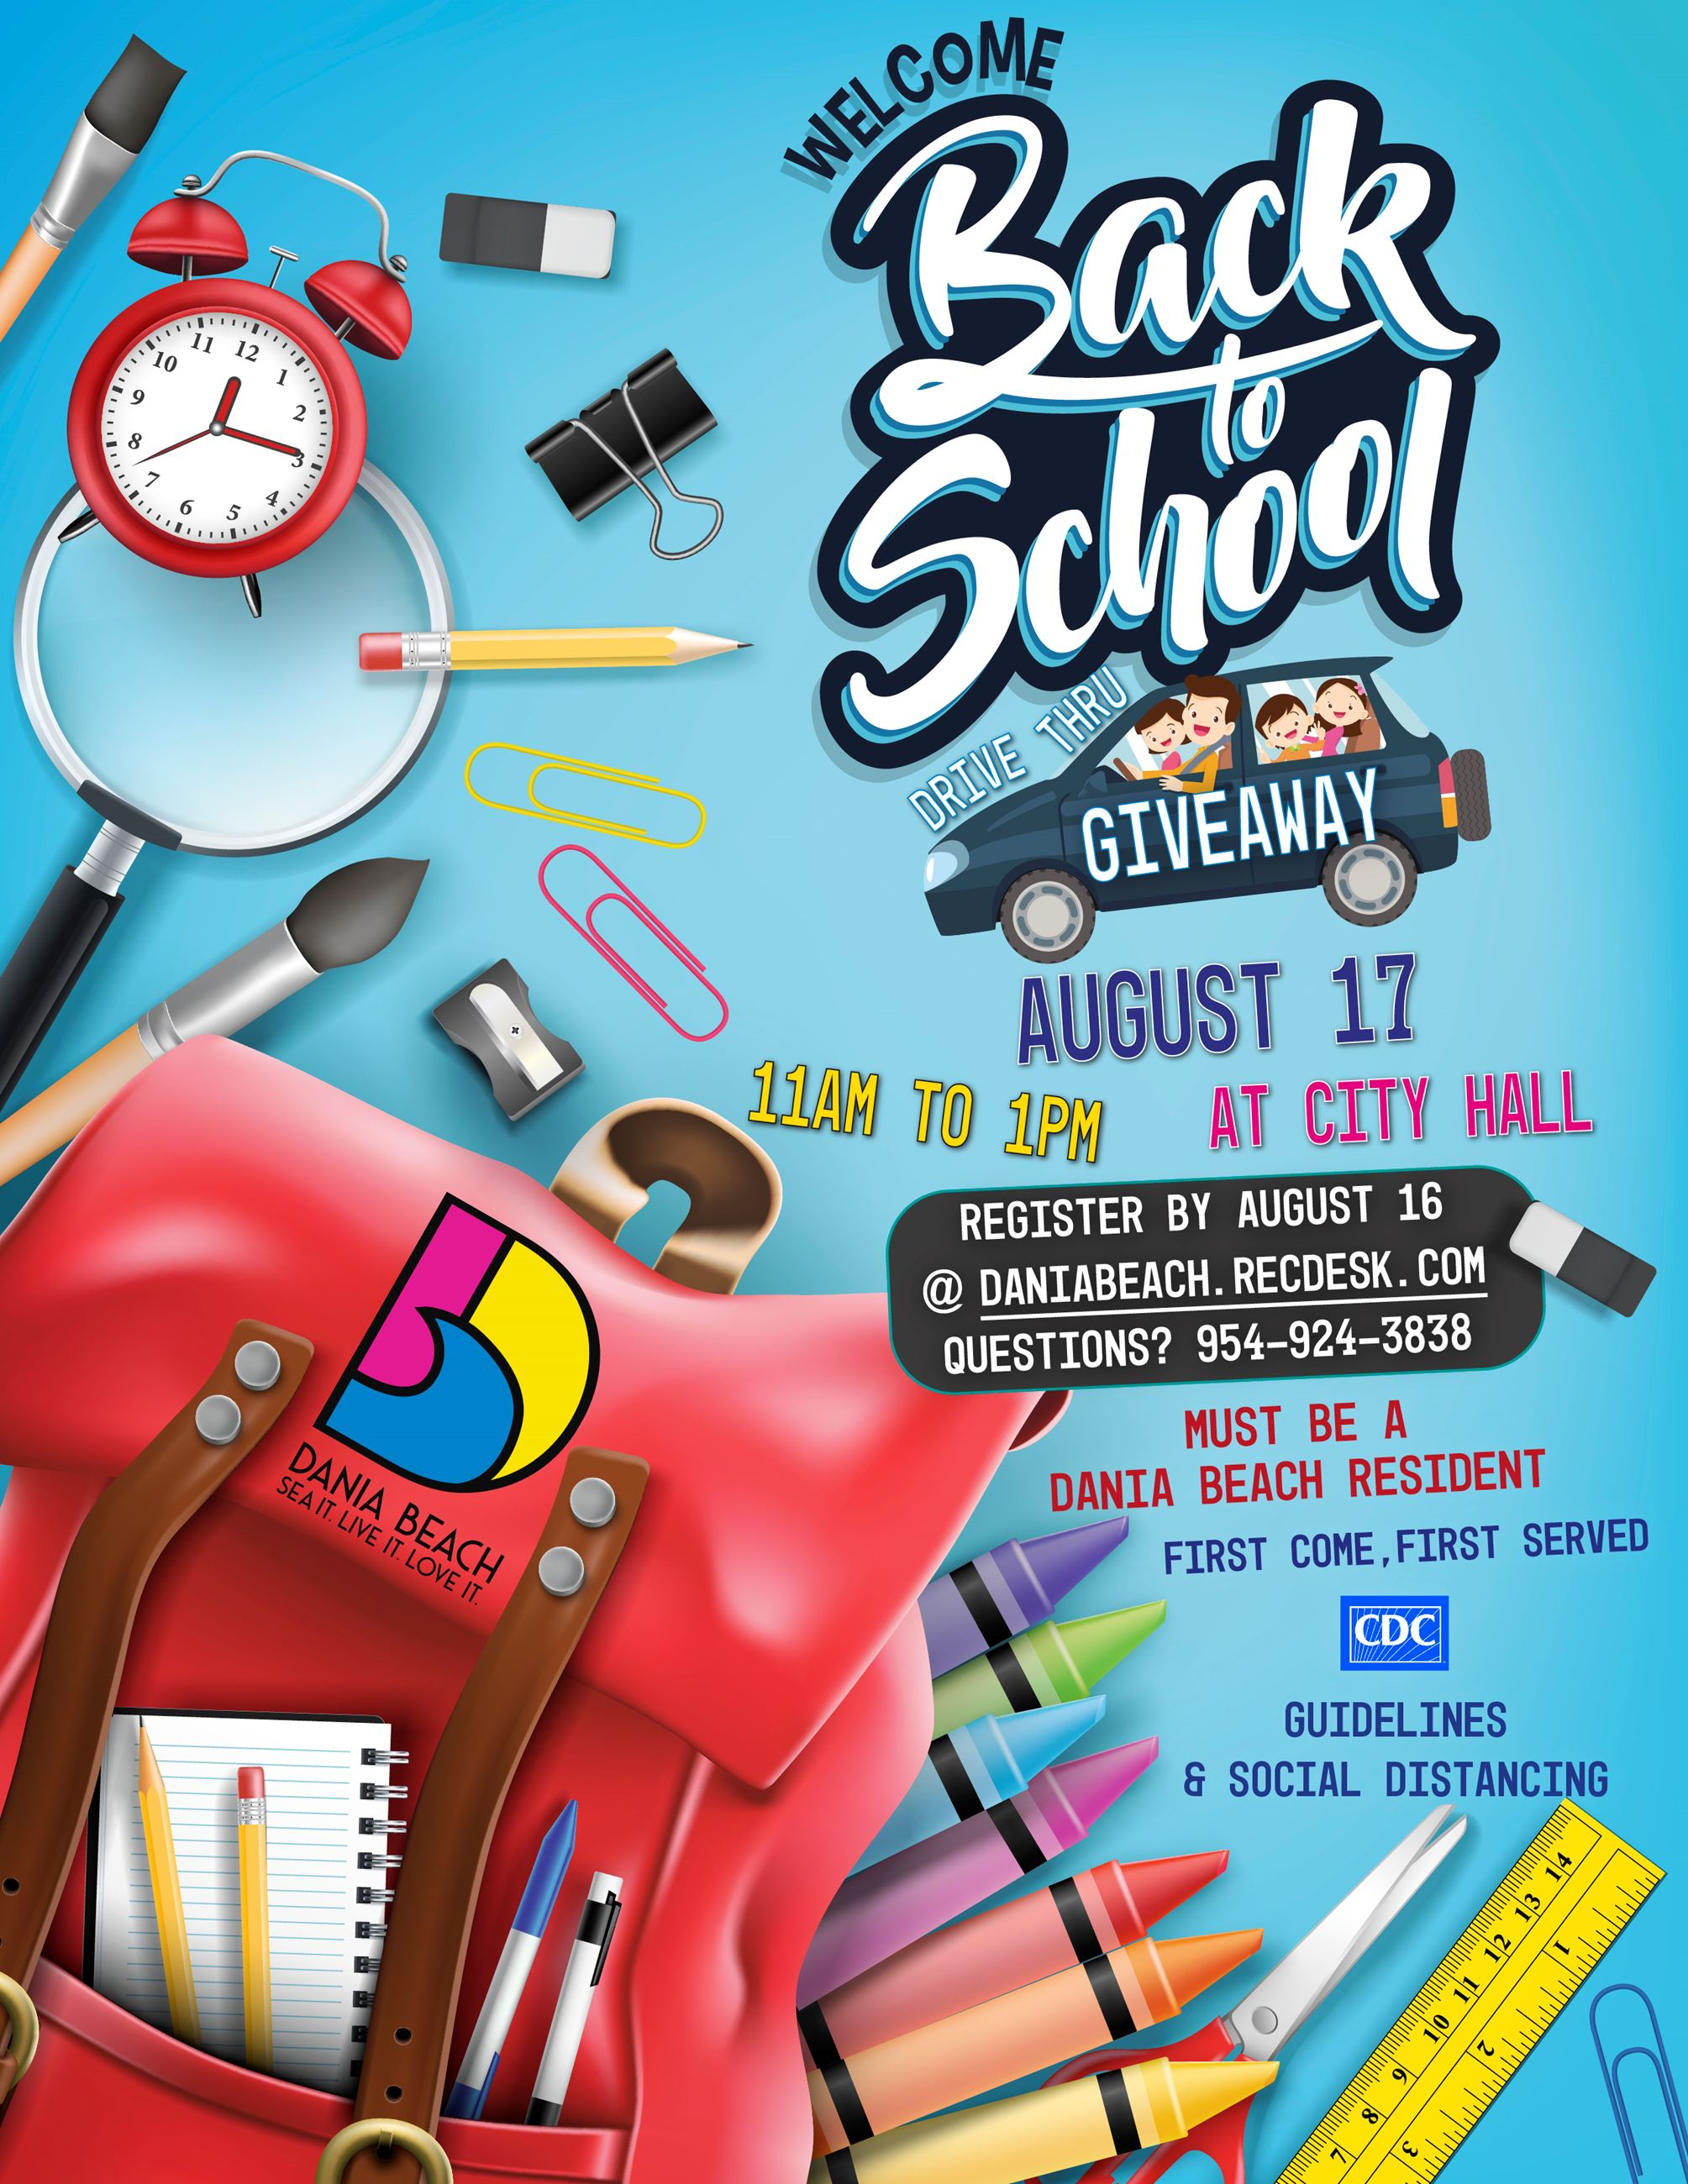 Back to School Drive-thru Giveaway in Dania Beach